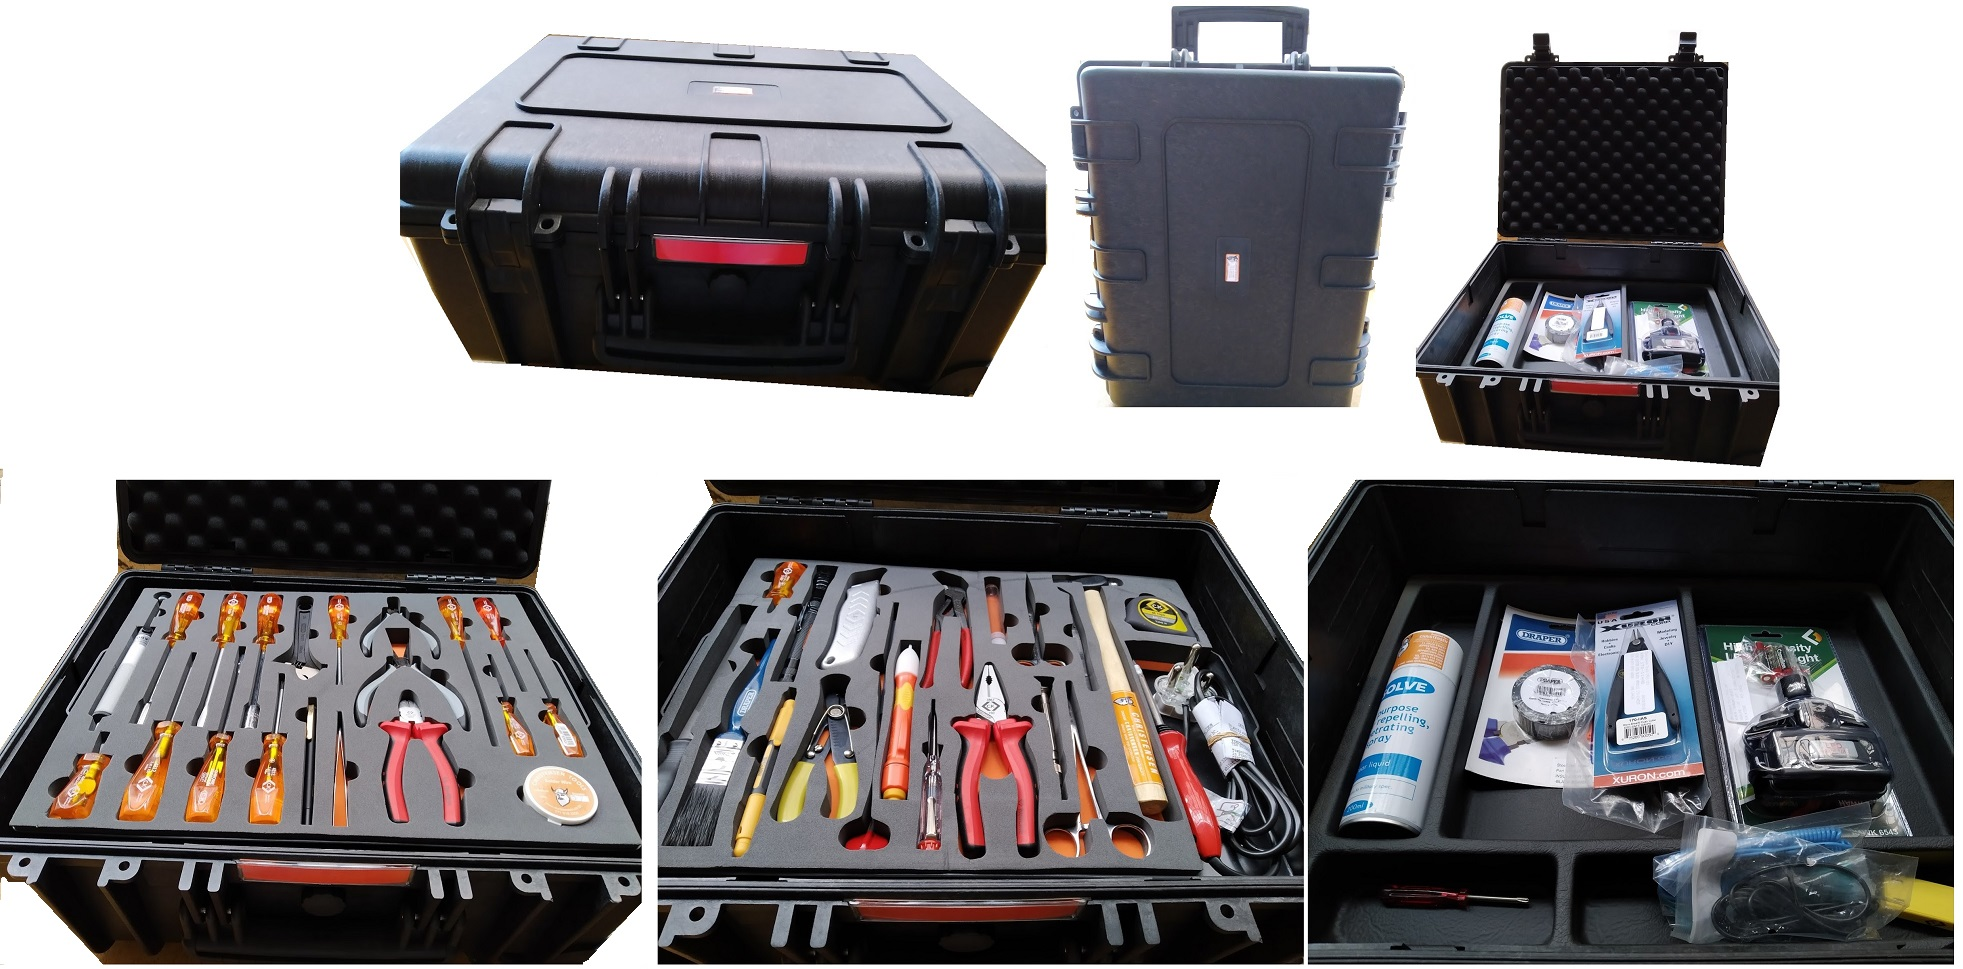 Christensen Electronic, Engineers, Technicians service kit